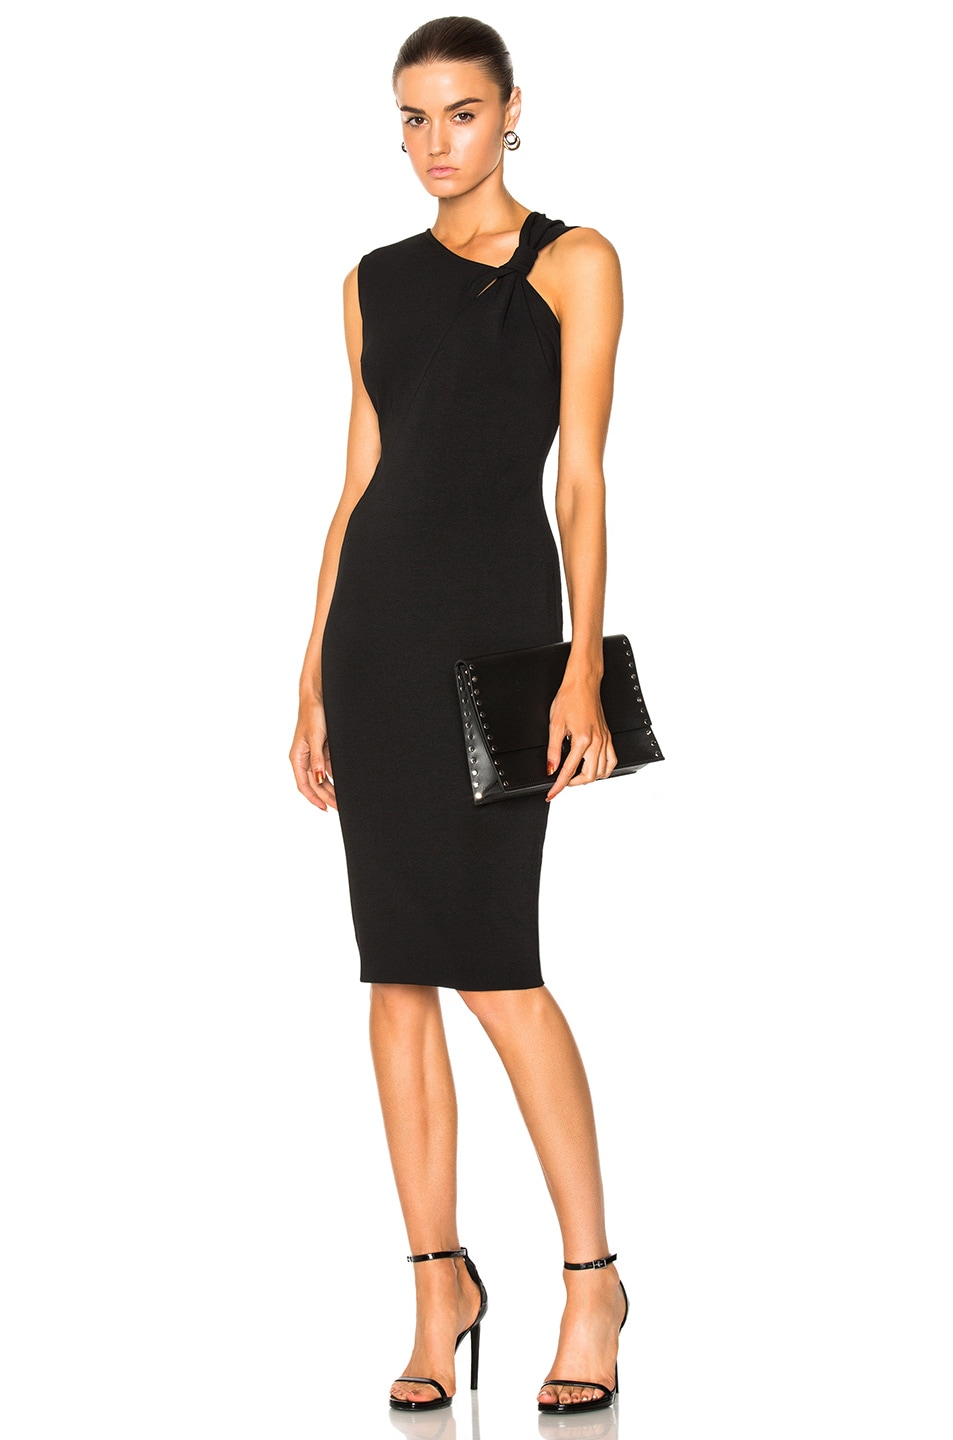 Victoria Beckham Matte Heavy Rib Jersey Sleeveless Knotted Dress in Black